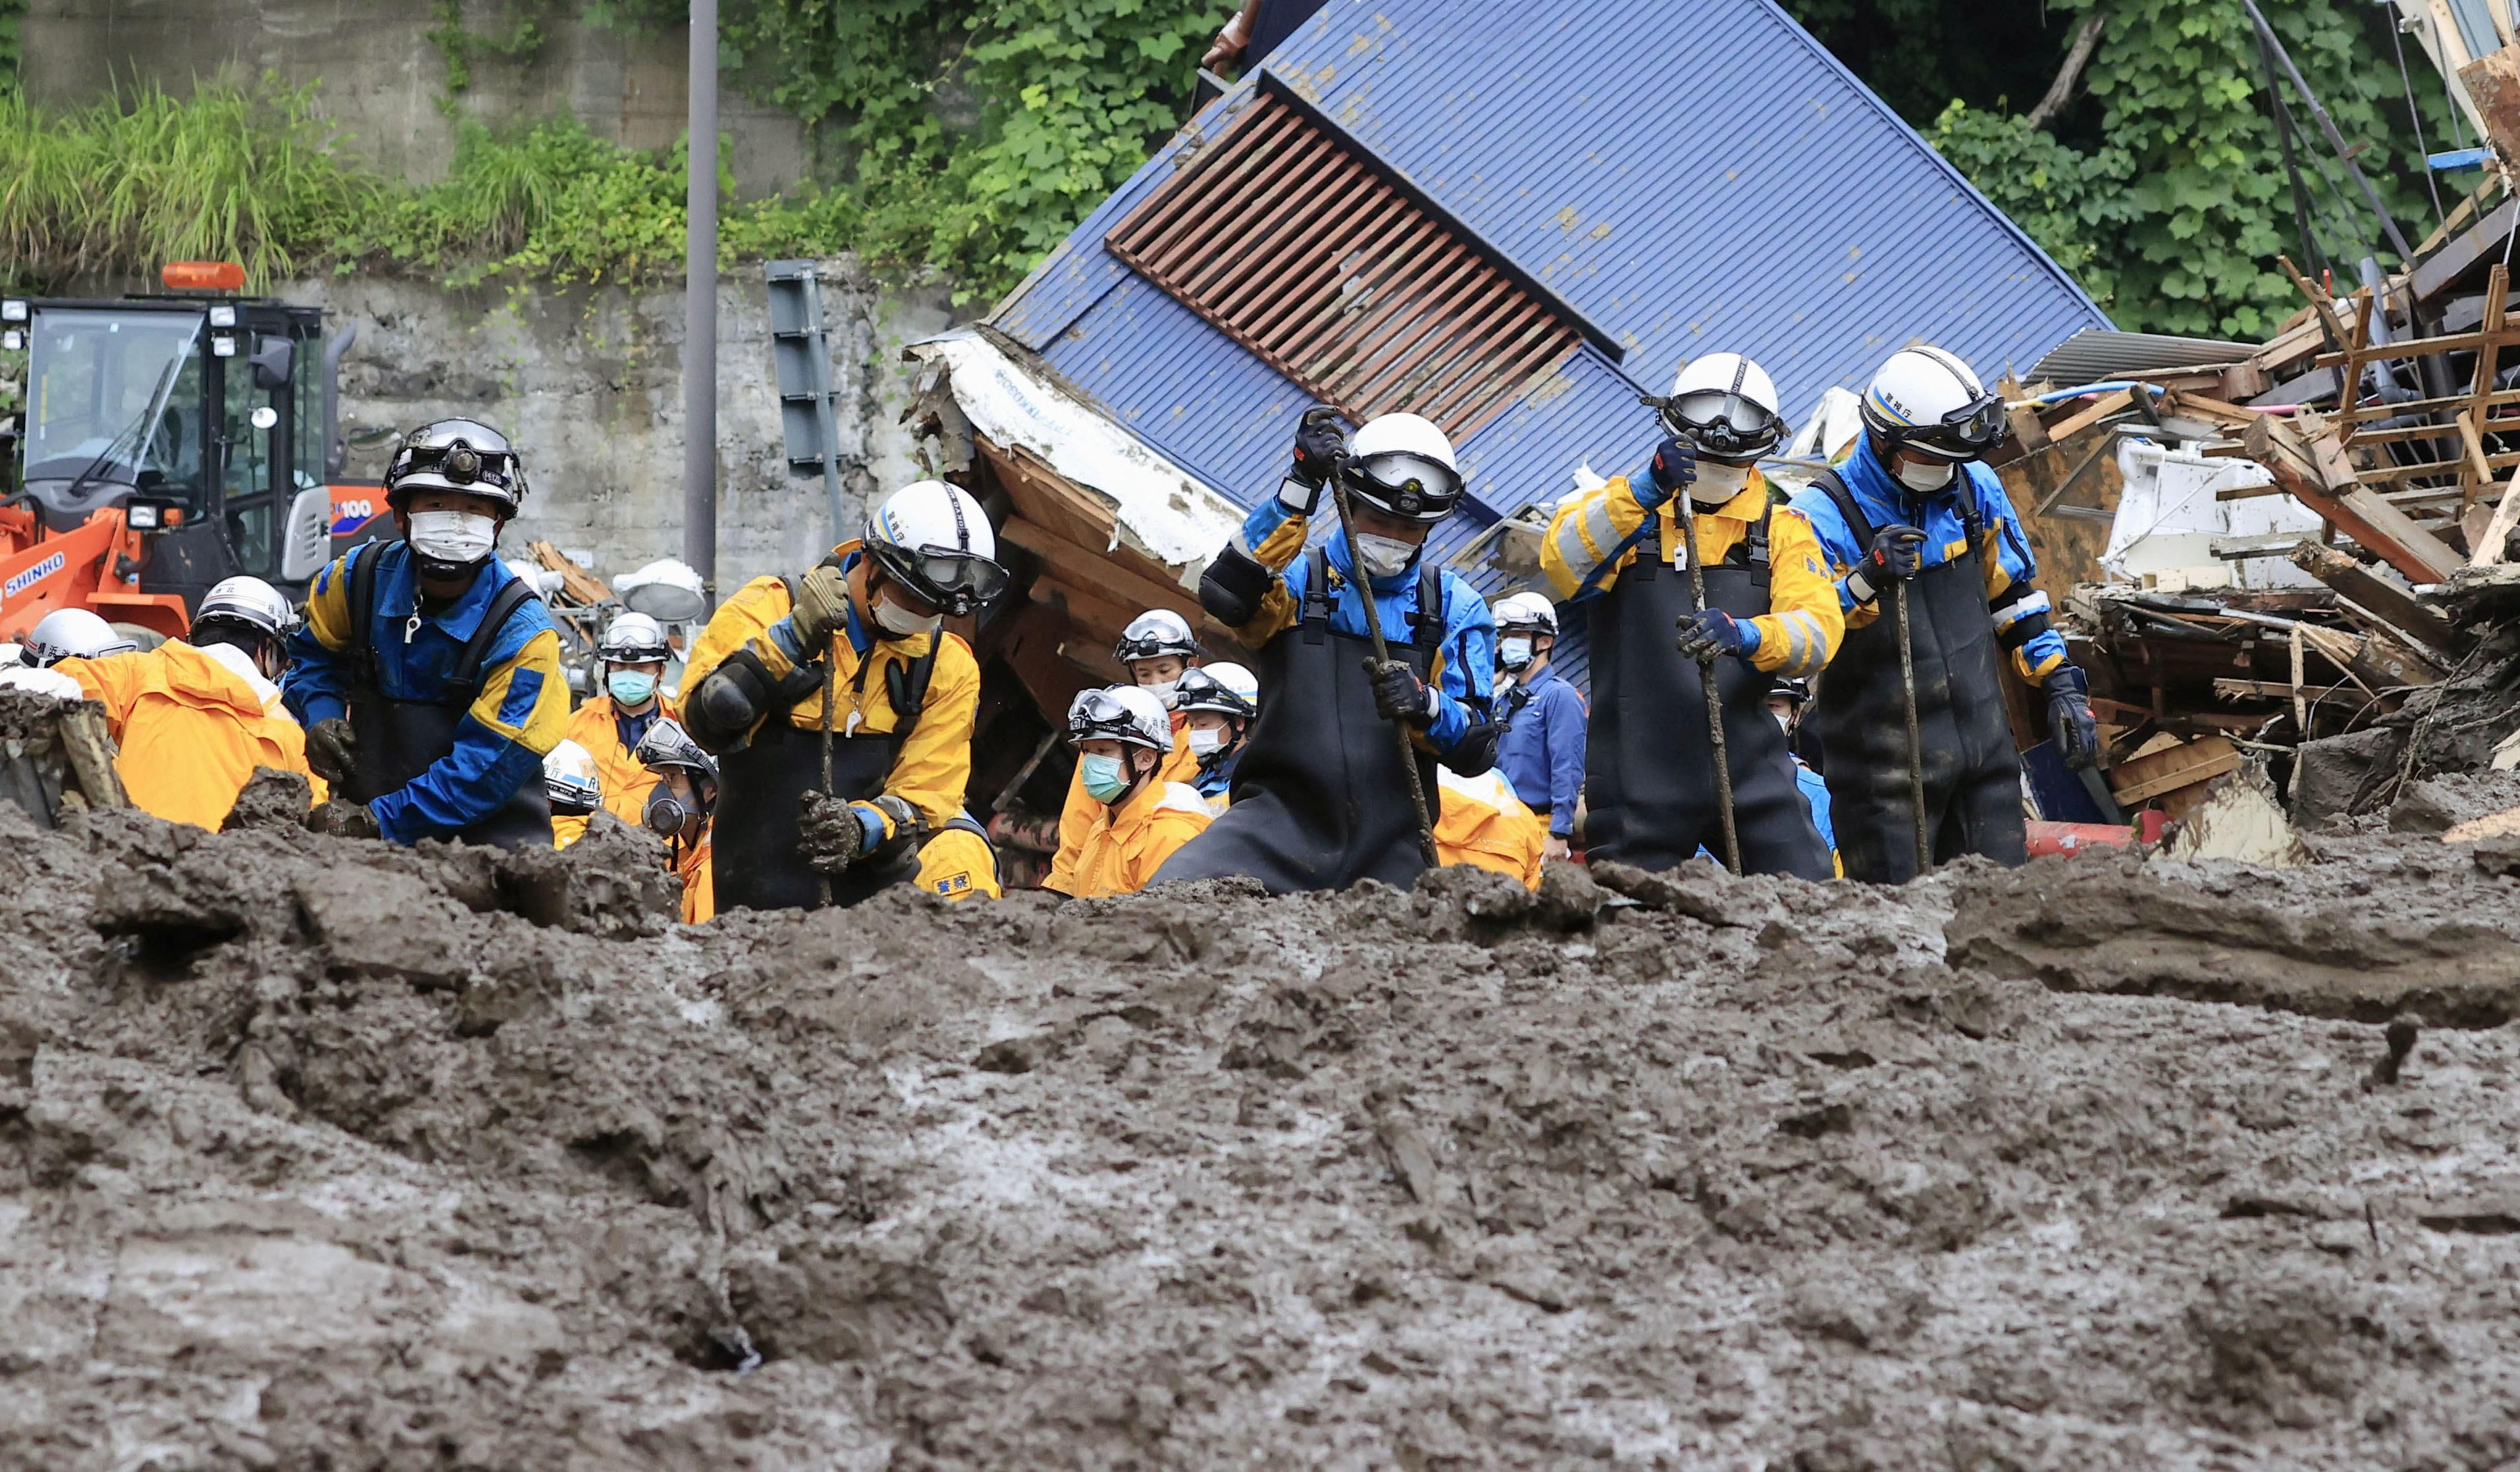 Police officers conduct a rescue and search operation at the site of a mudslide caused by heavy rain at Izusan district in Atami, Japan July 5, 2021, in this photo taken by Kyodo.